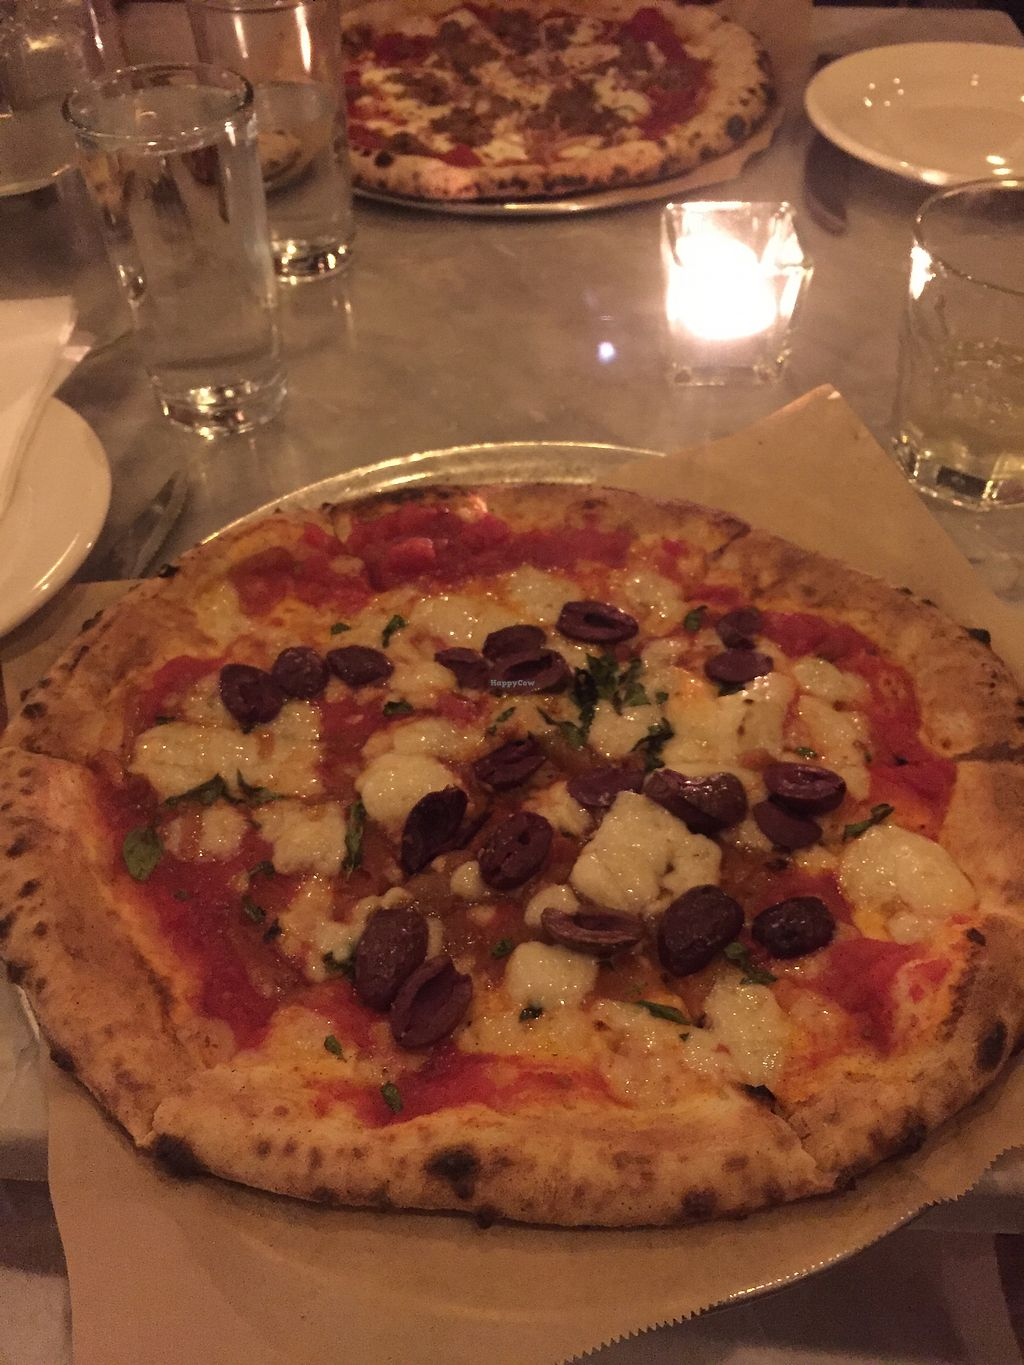 """Photo of Pizza Barbone  by <a href=""""/members/profile/haleylikesspinach"""">haleylikesspinach</a> <br/>Barbone Meatball with vegan cashew cheese, no meatball <br/> August 31, 2017  - <a href='/contact/abuse/image/68305/299248'>Report</a>"""